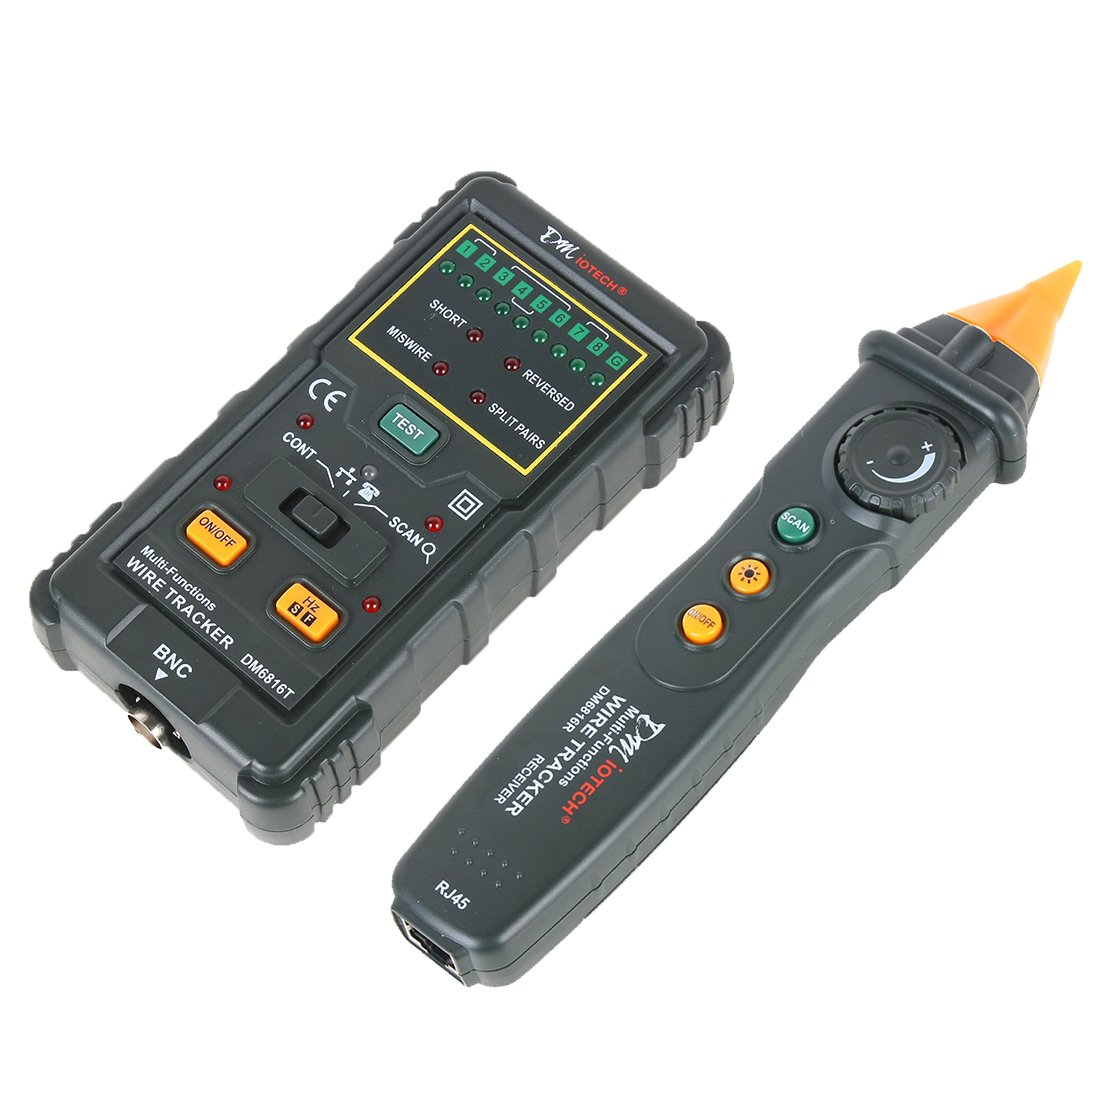 uxcell RJ11 RJ45 BNC Wire Tracker Network Cable Tester Telephone ...